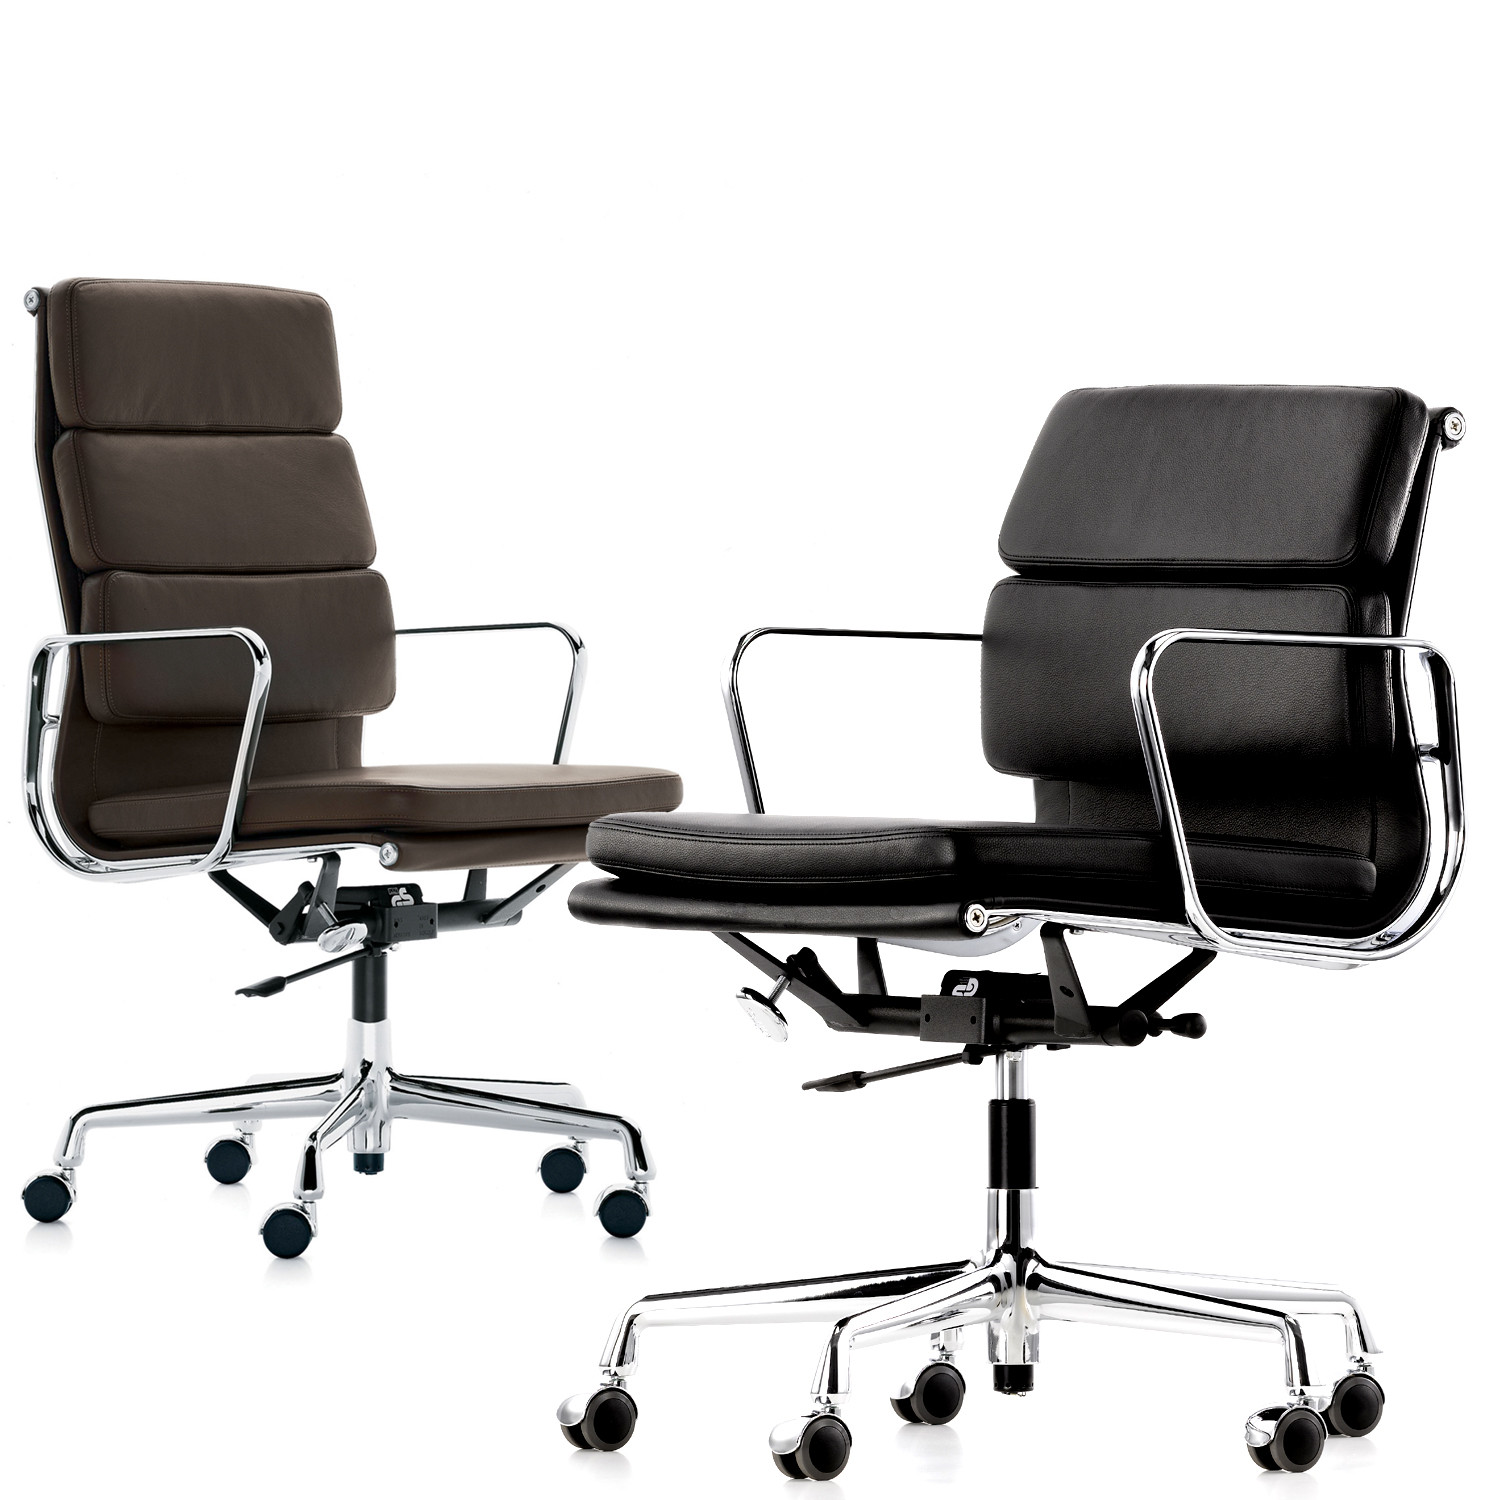 Soft Pad Task Chairs EA217 and EA219